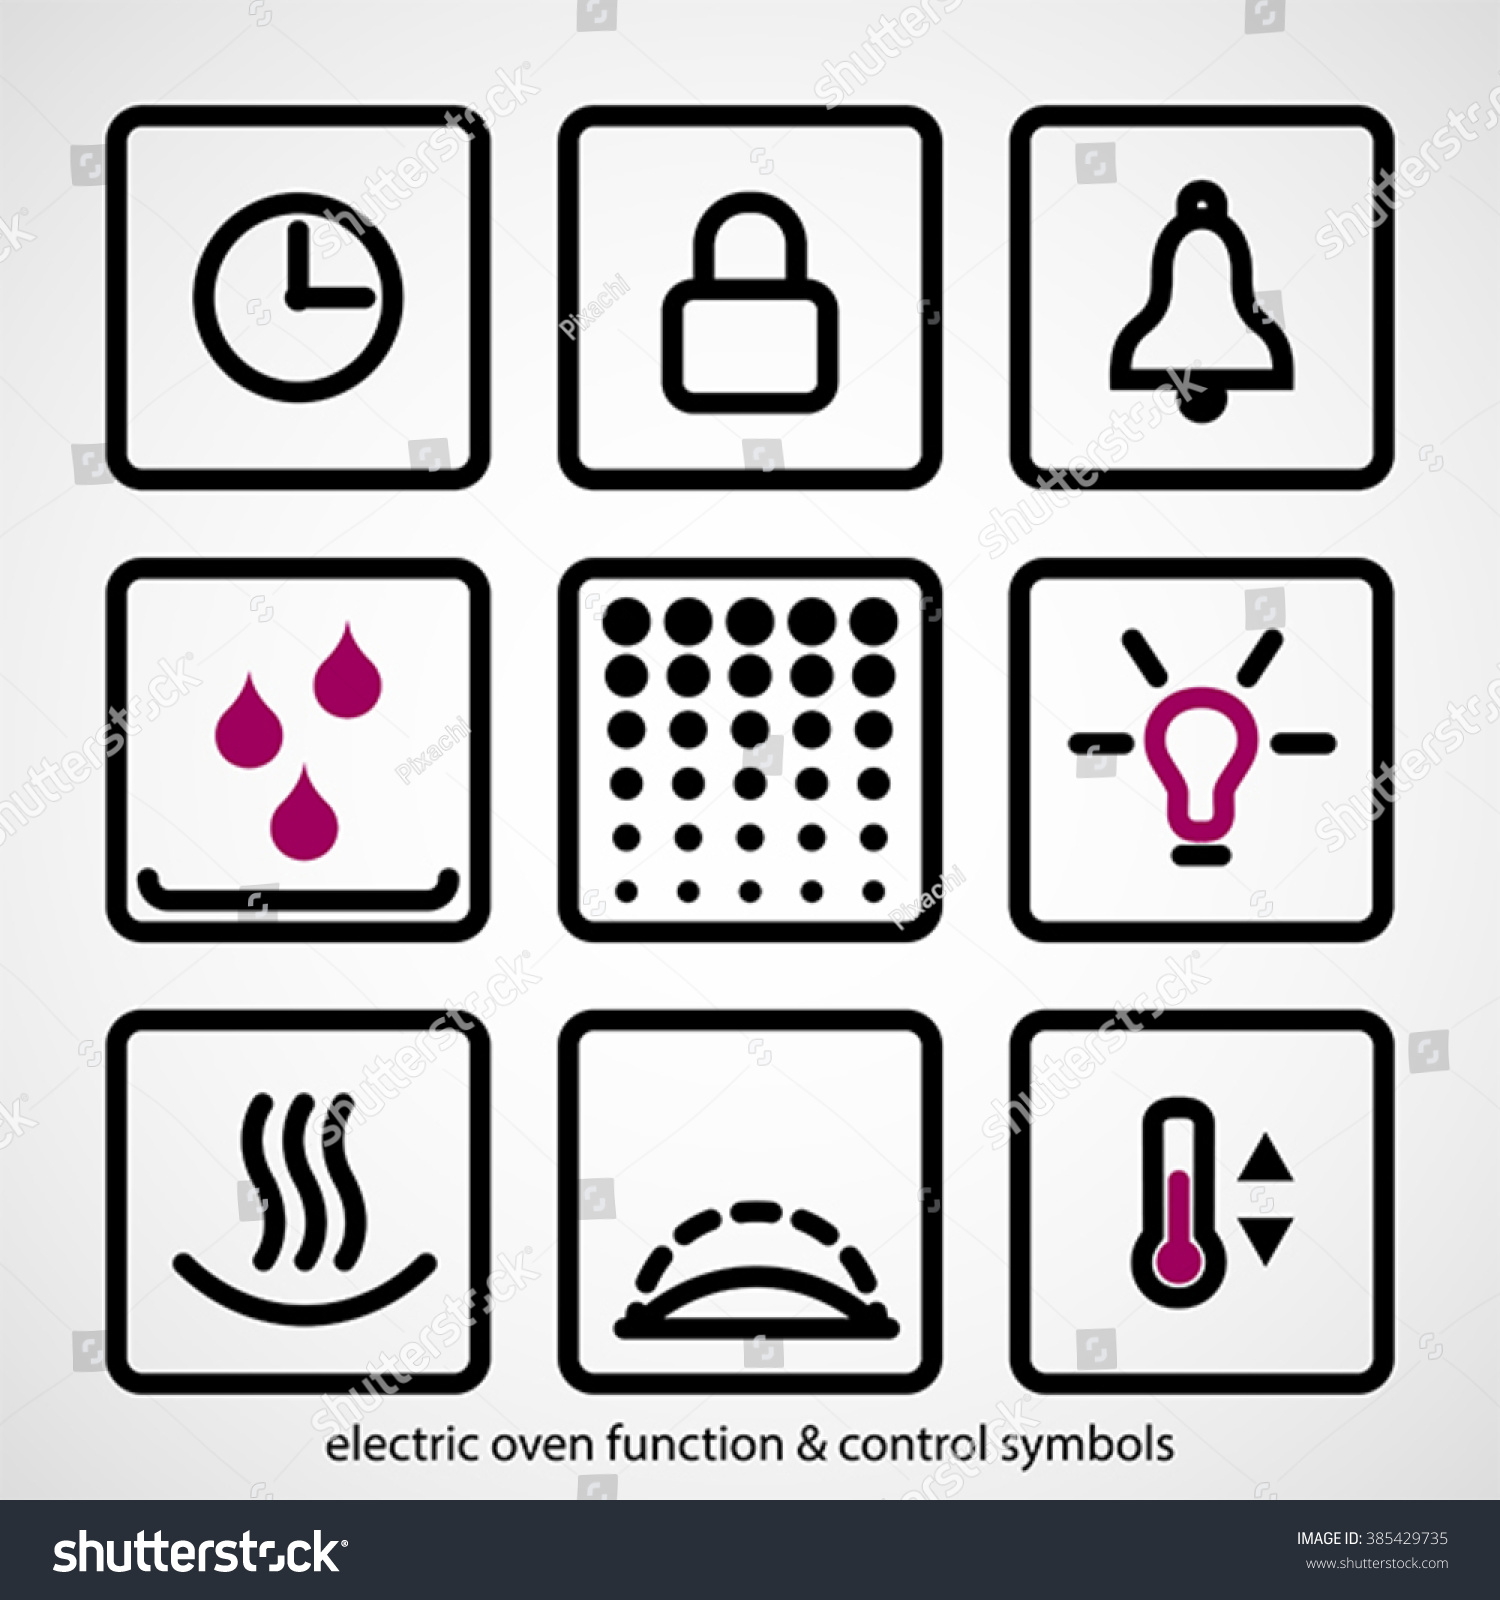 Electric Oven Function Control Symbols Outline Stock Vector Hd